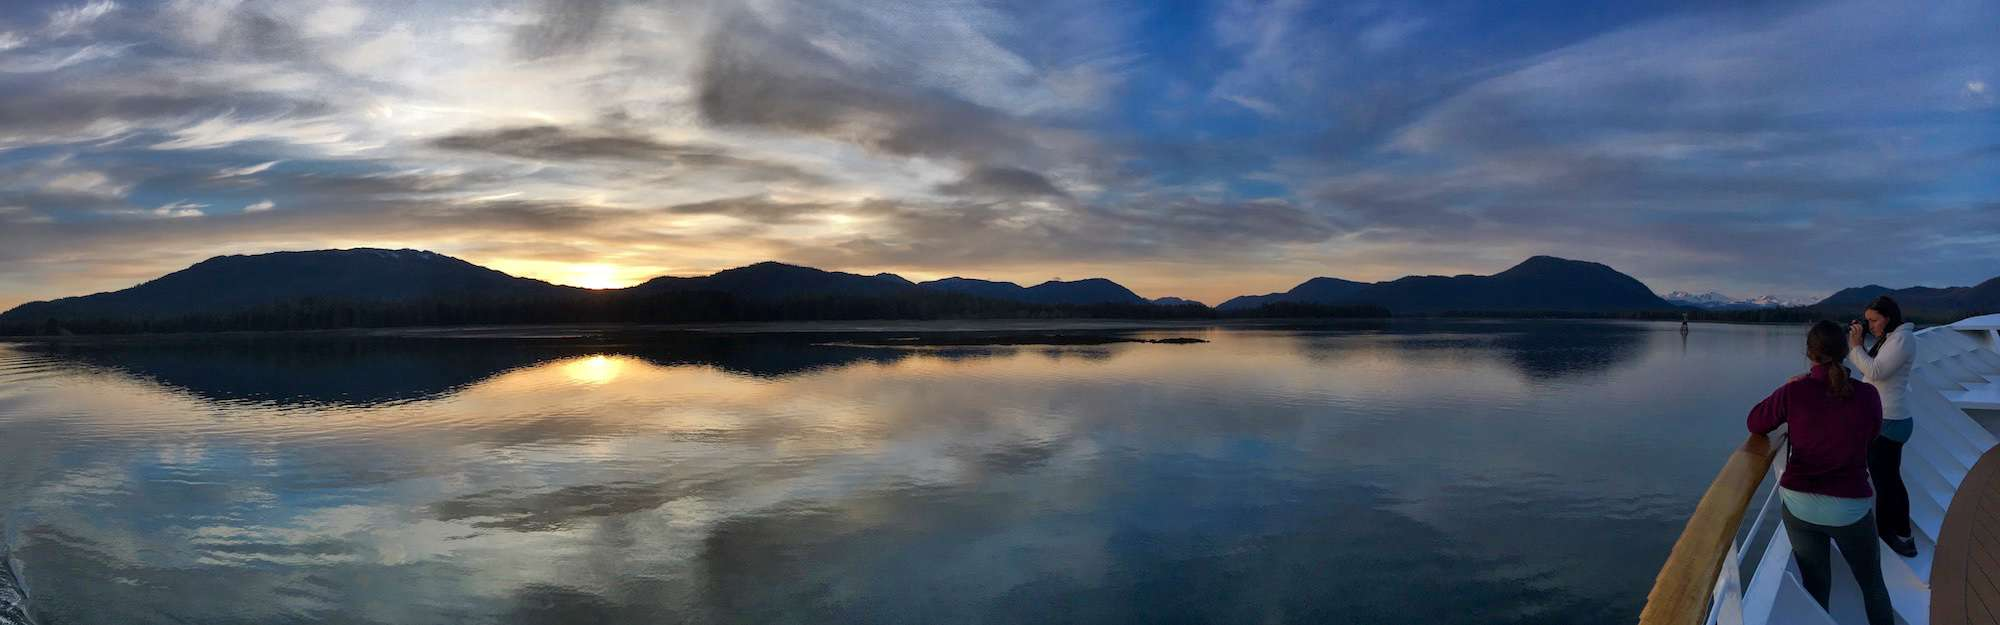 Sunset in Wrangell Narrows